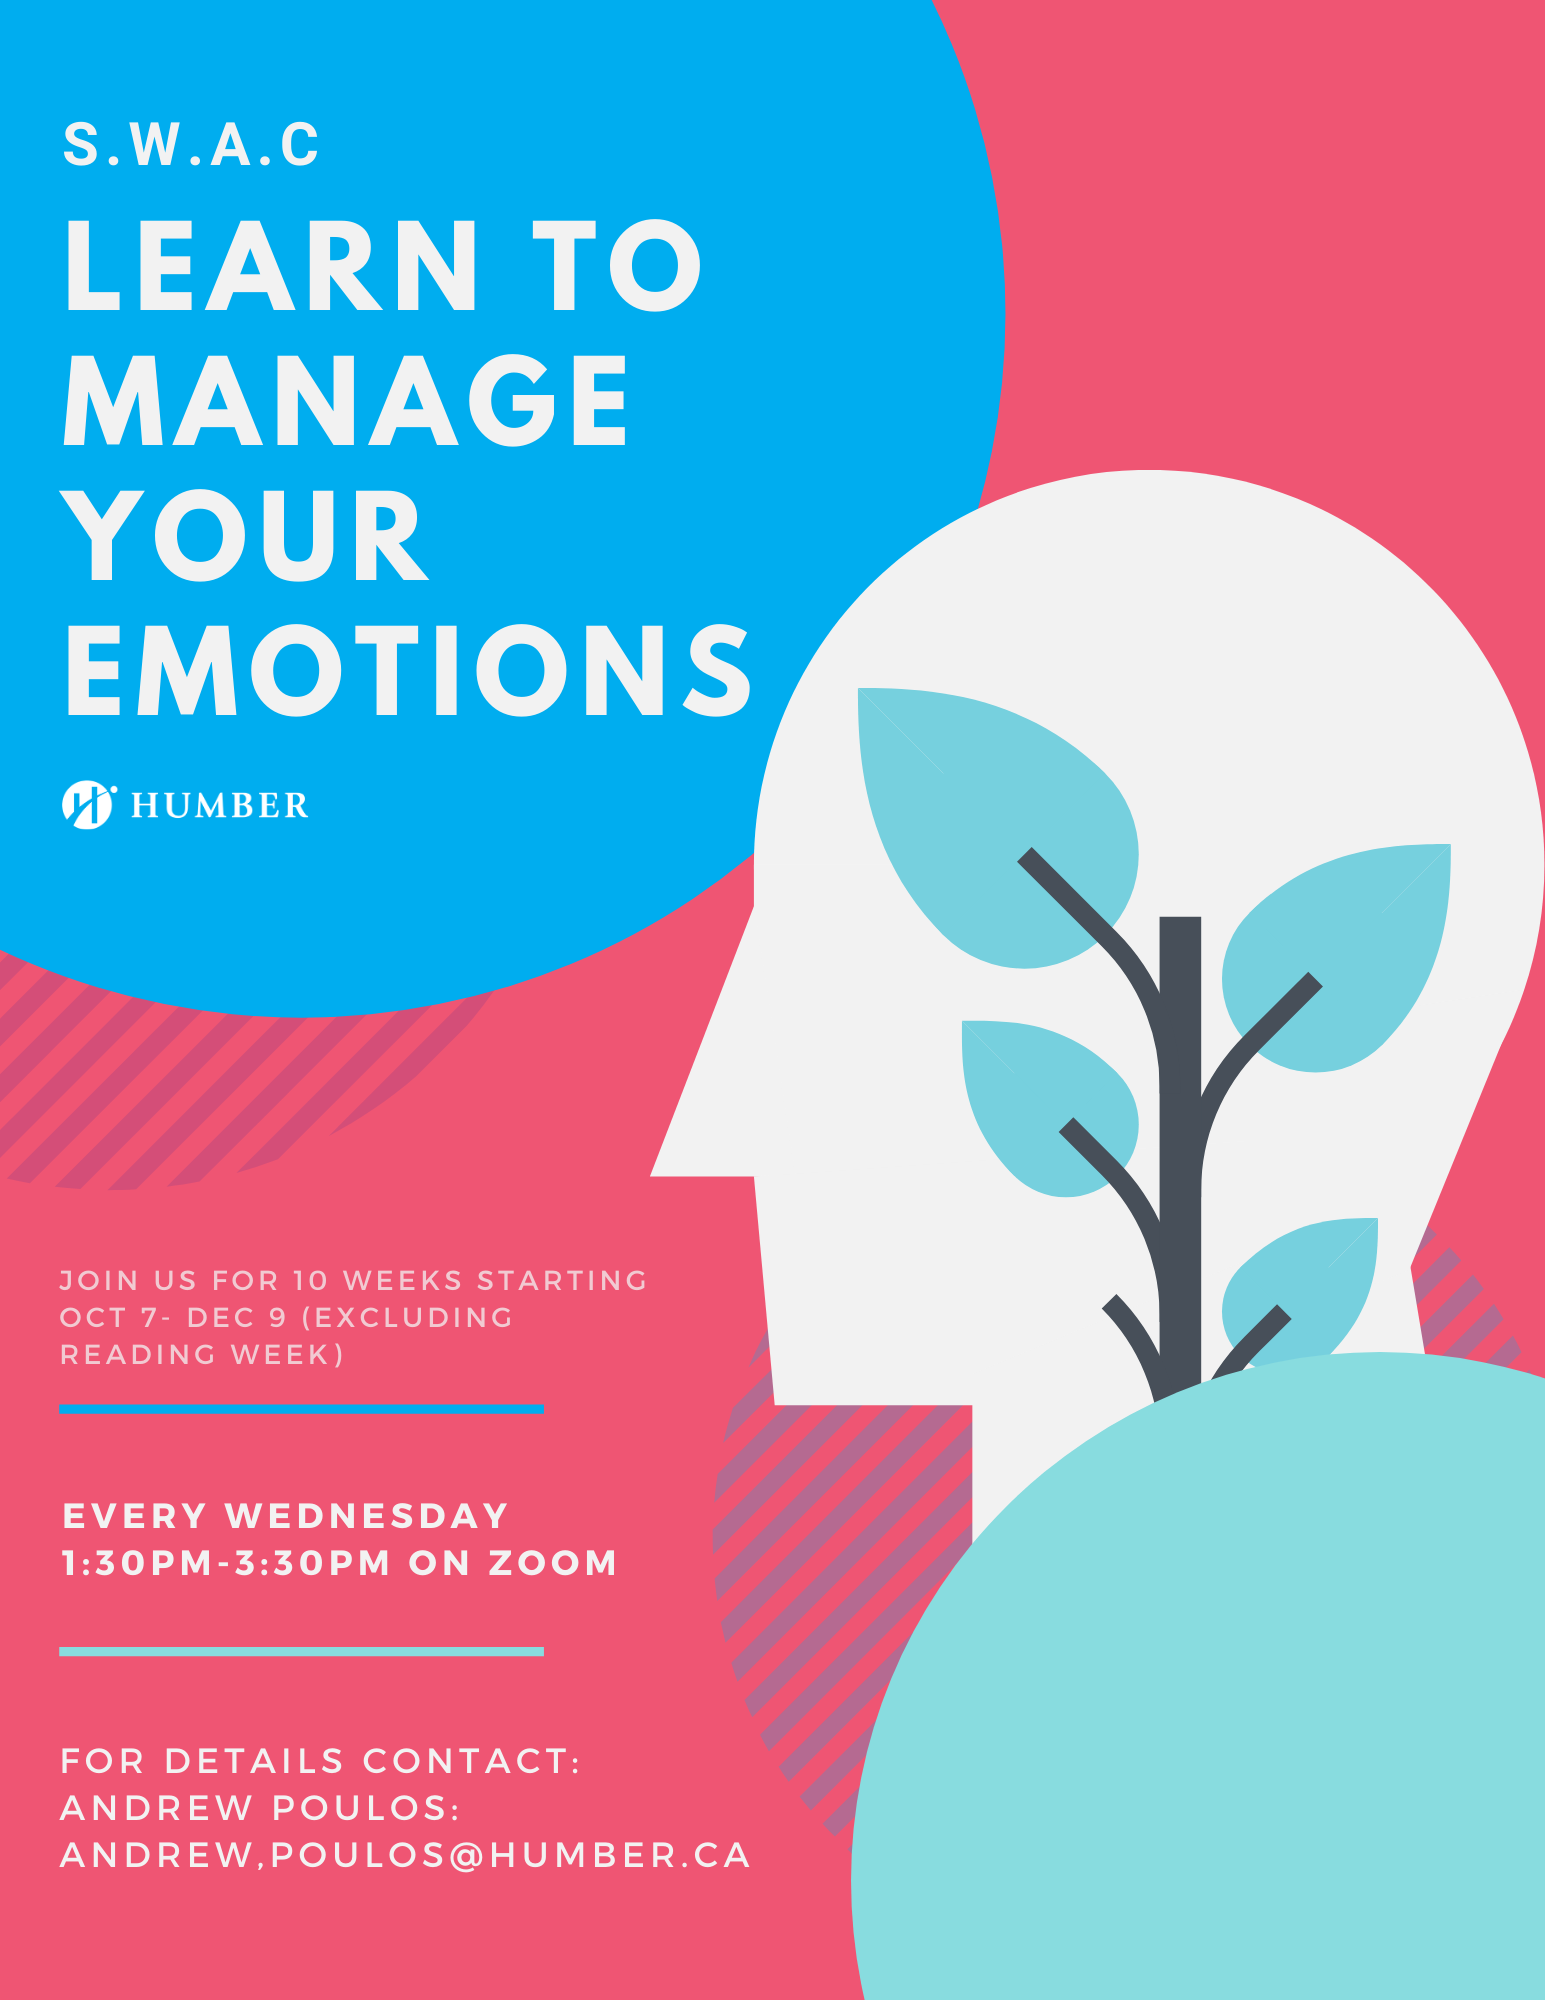 learn to manage your emotions poster, every Wednesday, 1:30pm-3:30pm on Zoom